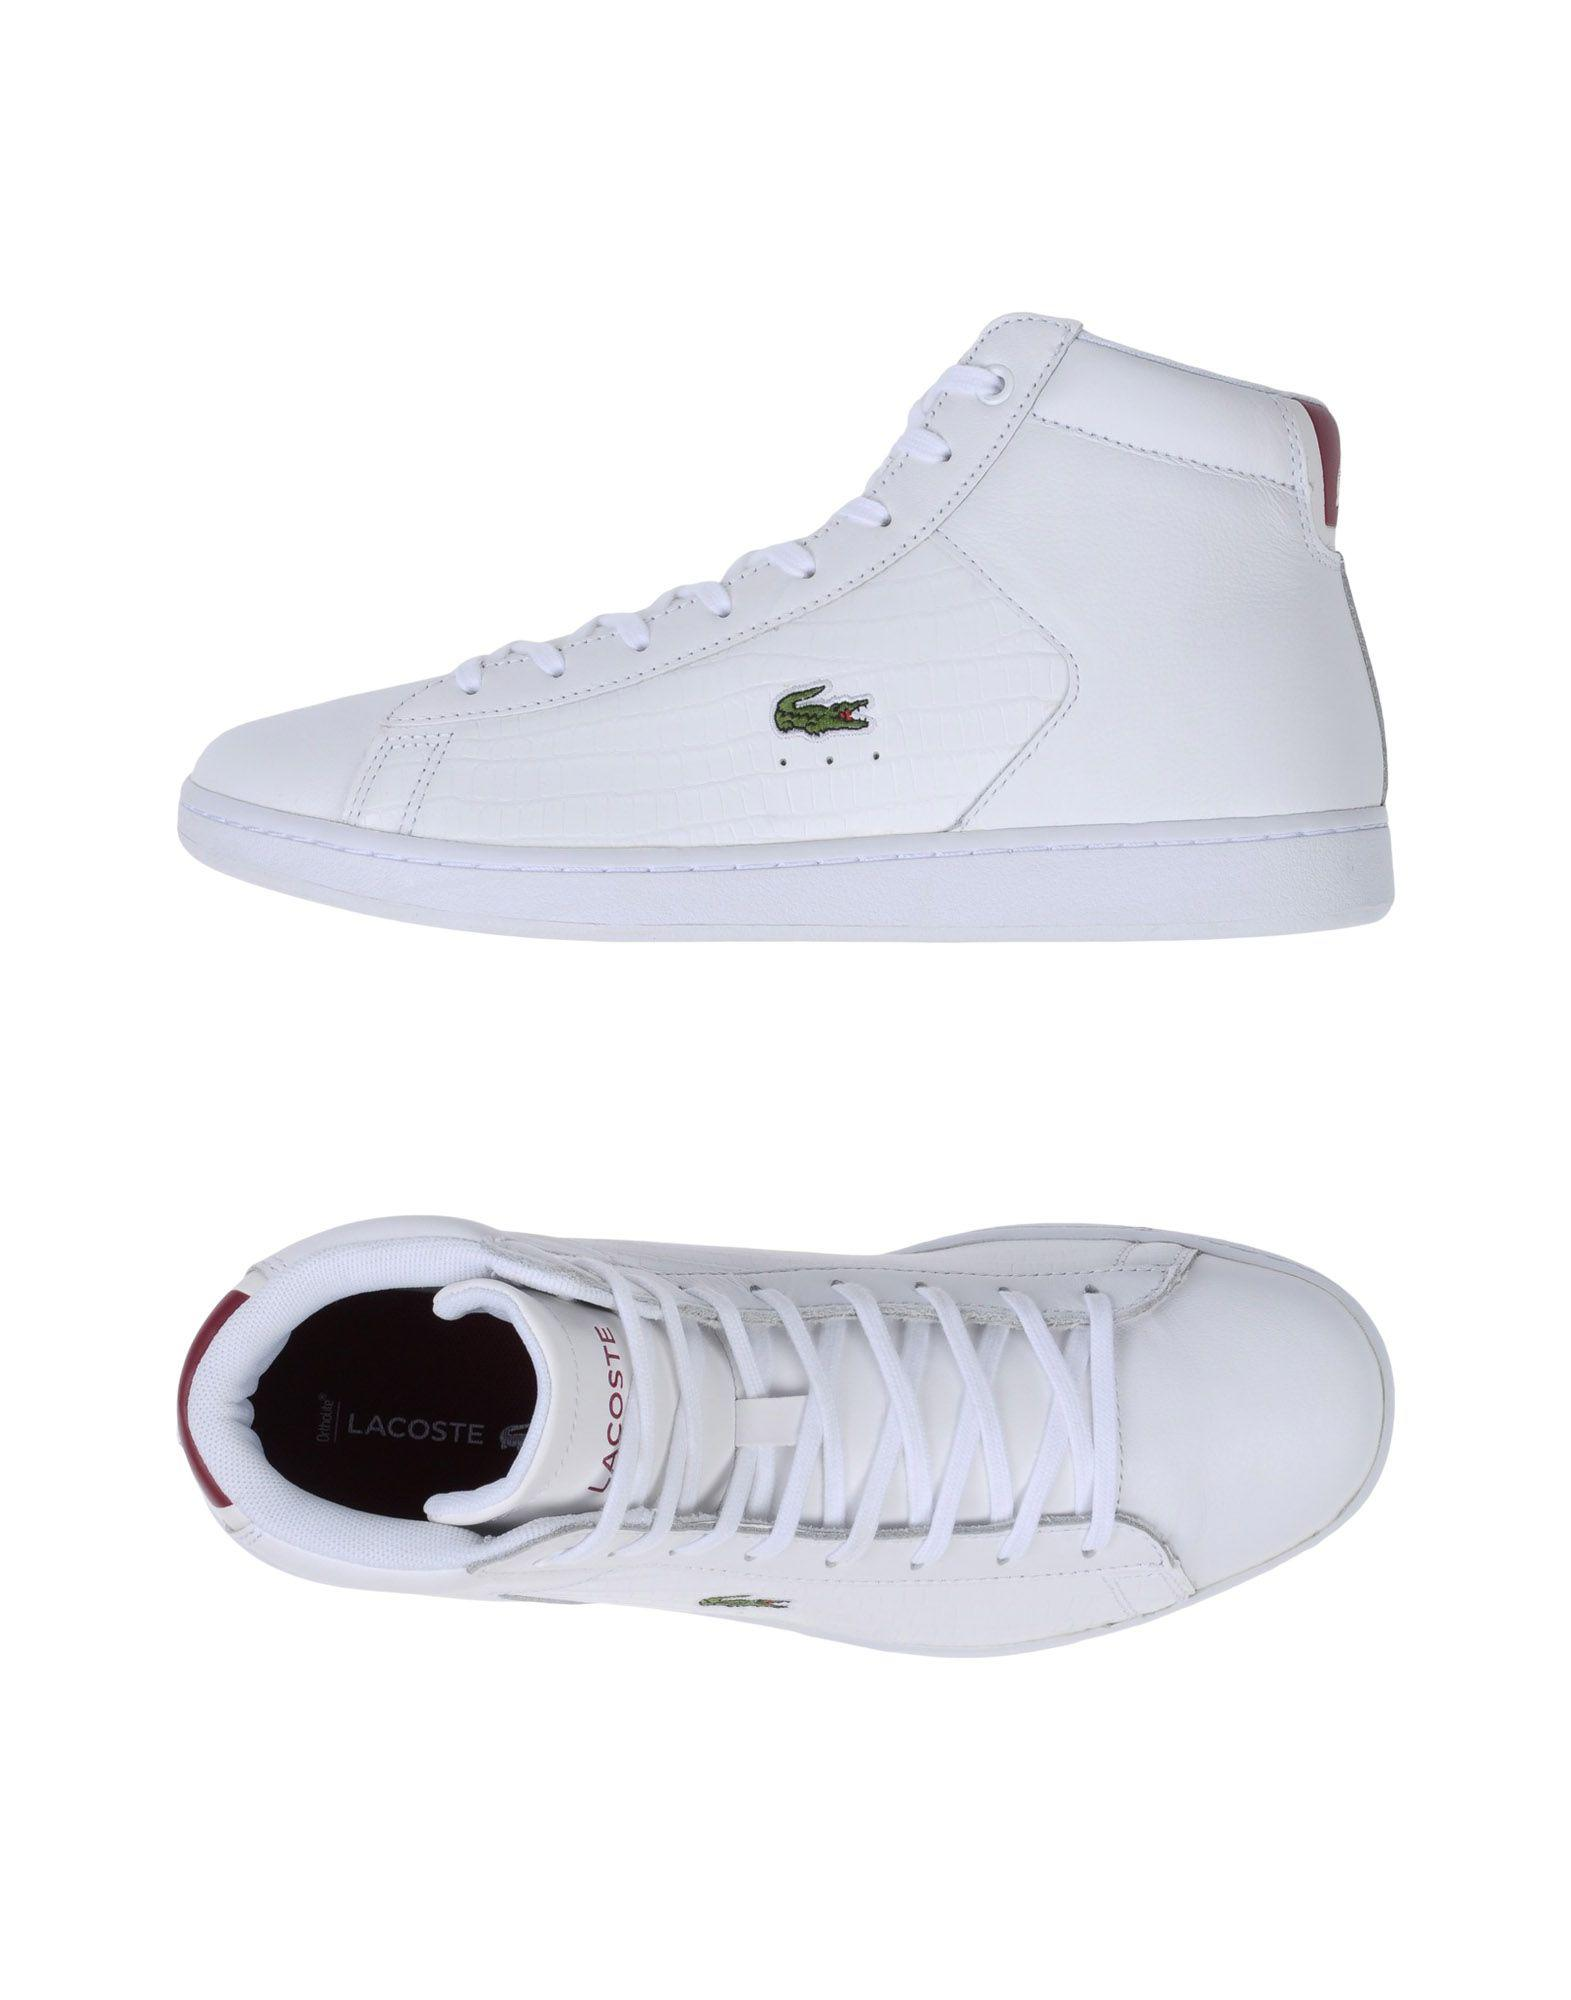 lyst lacoste hightops amp sneakers in white for men save 4